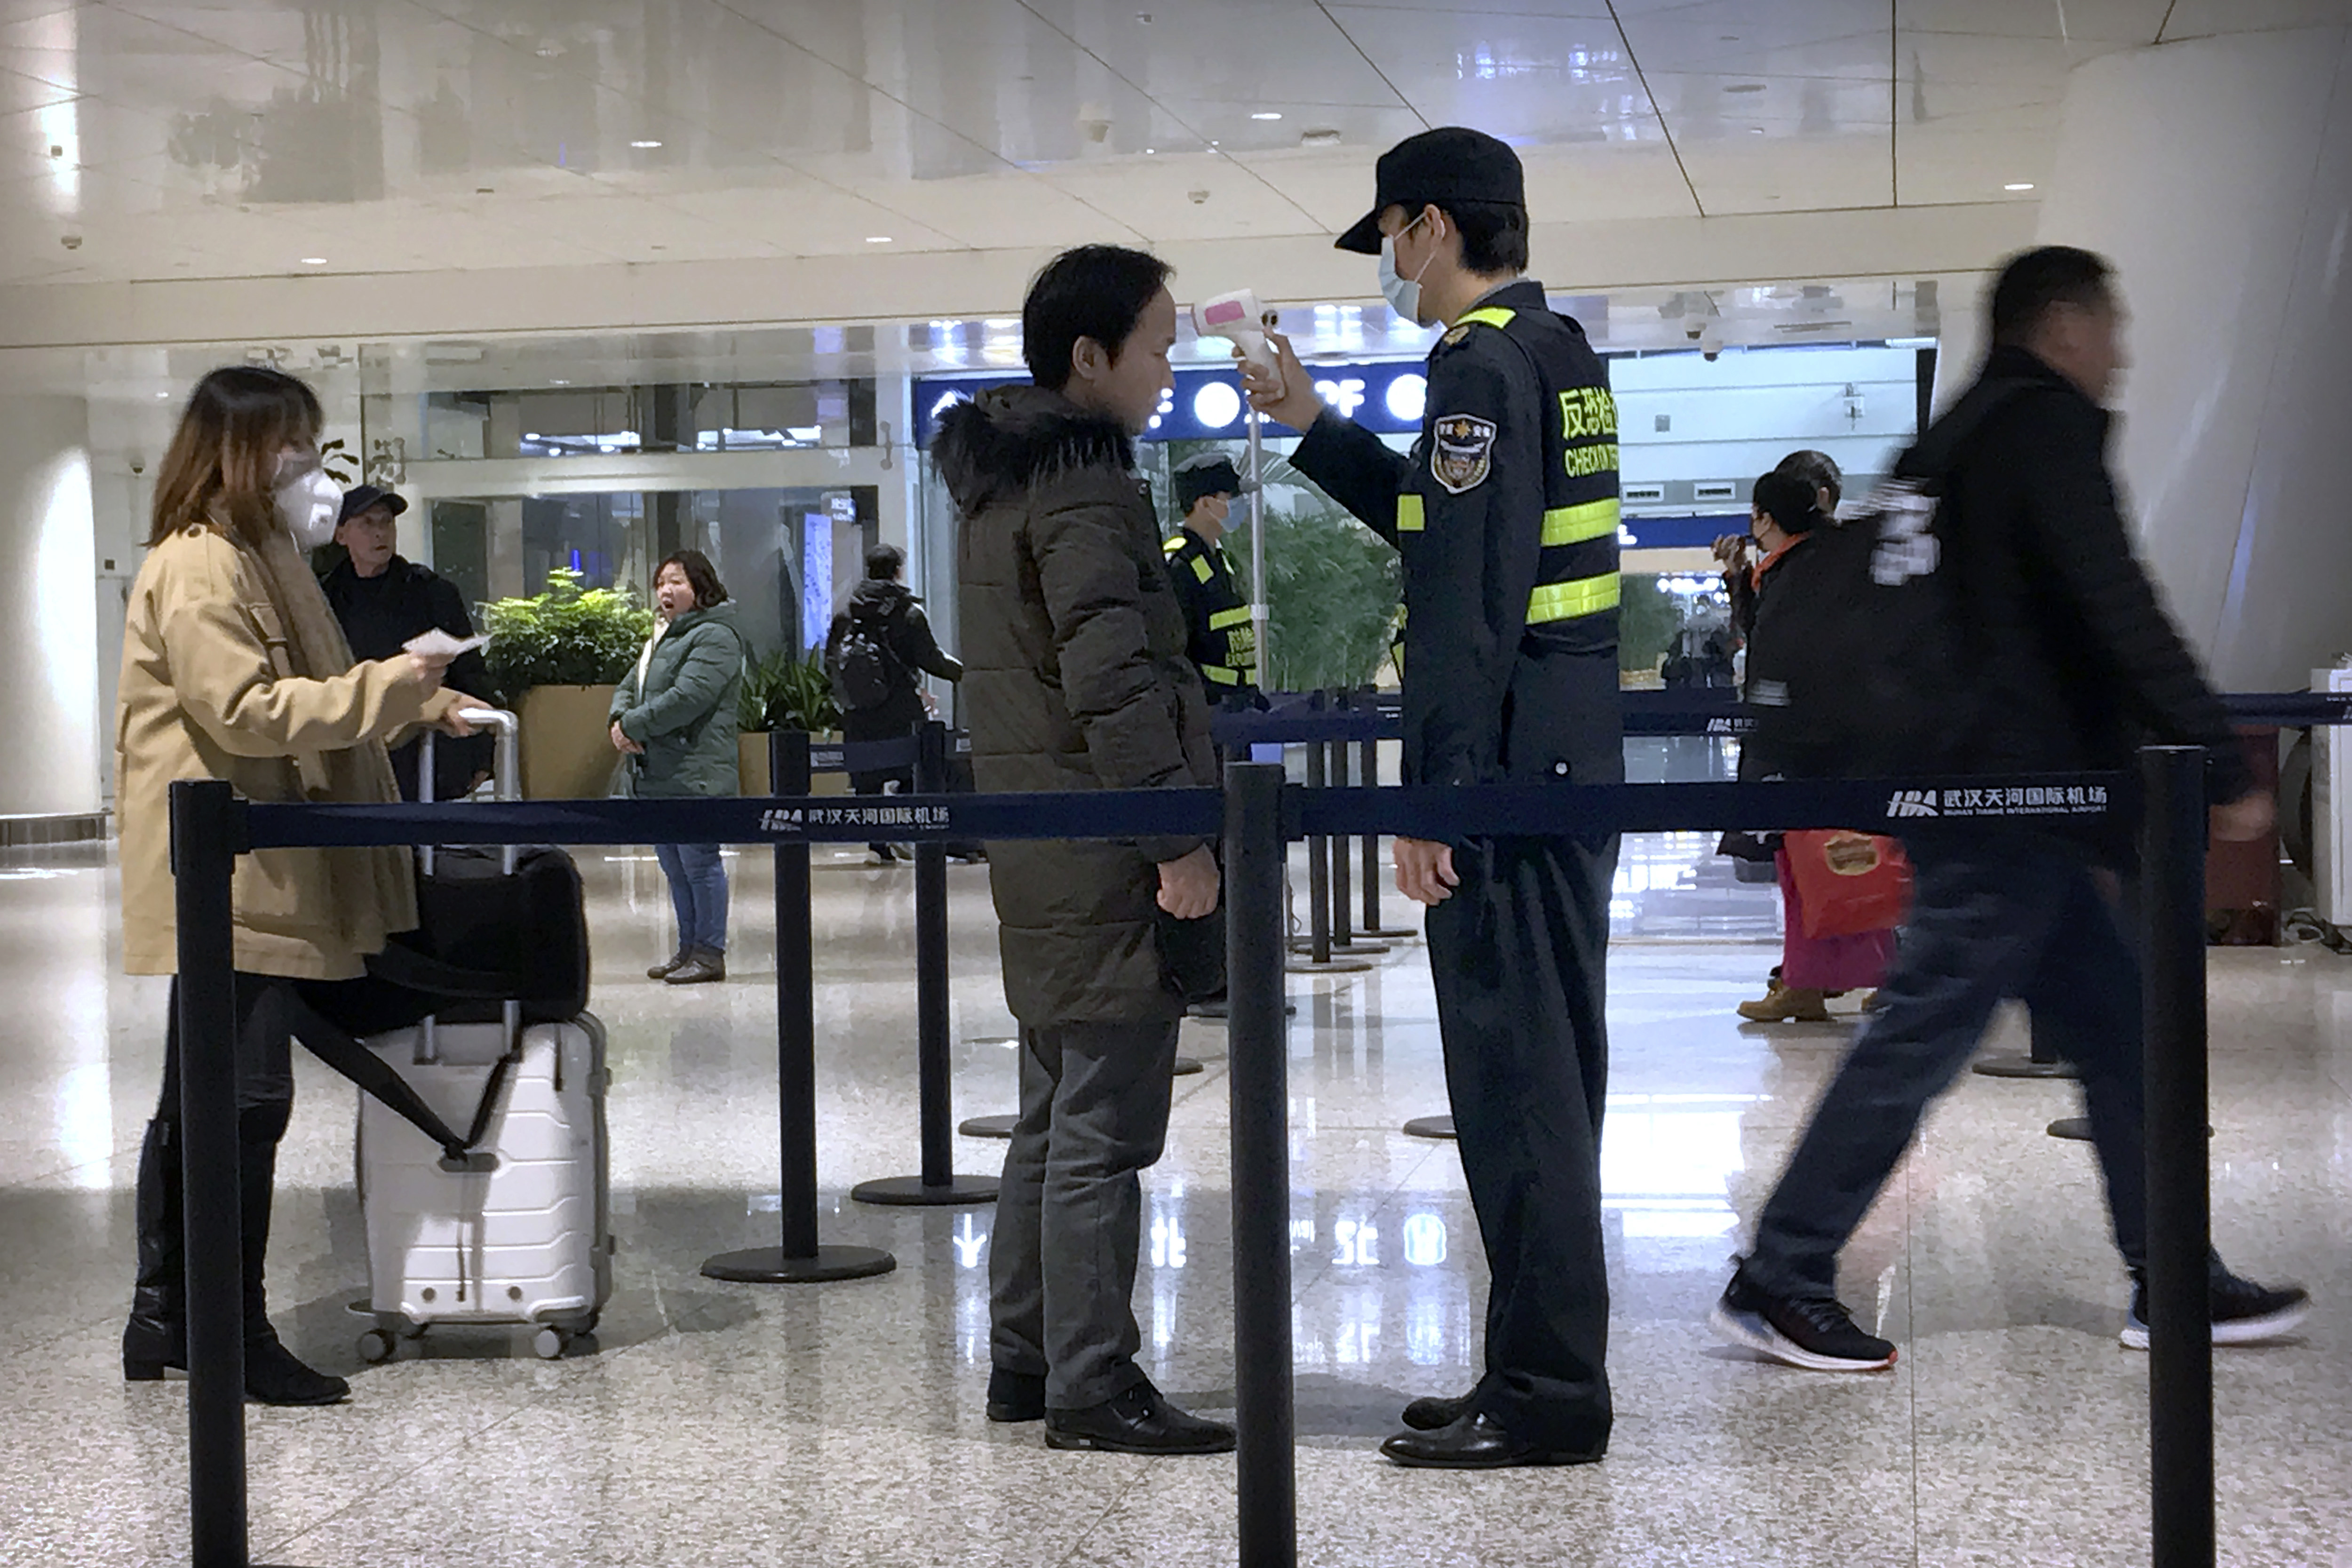 Coronavirus screenings coming to two more airports as first case hits US